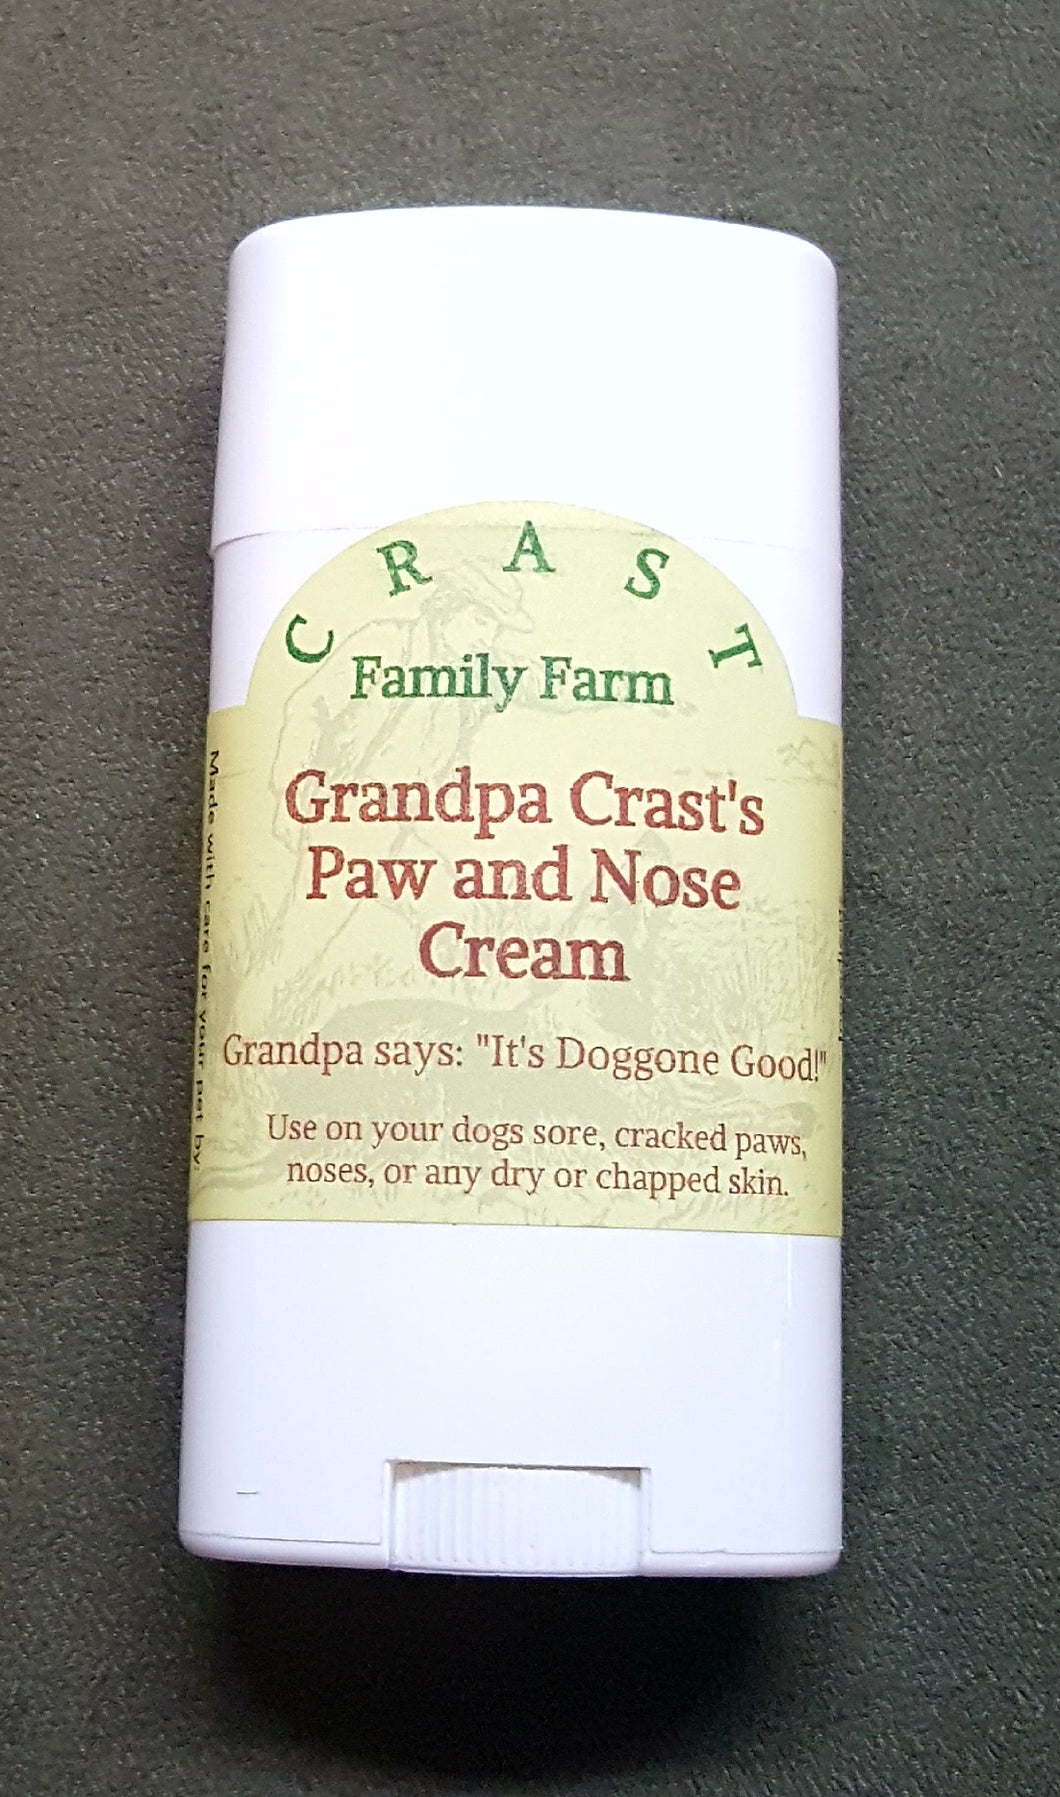 Paw and Nose Cream